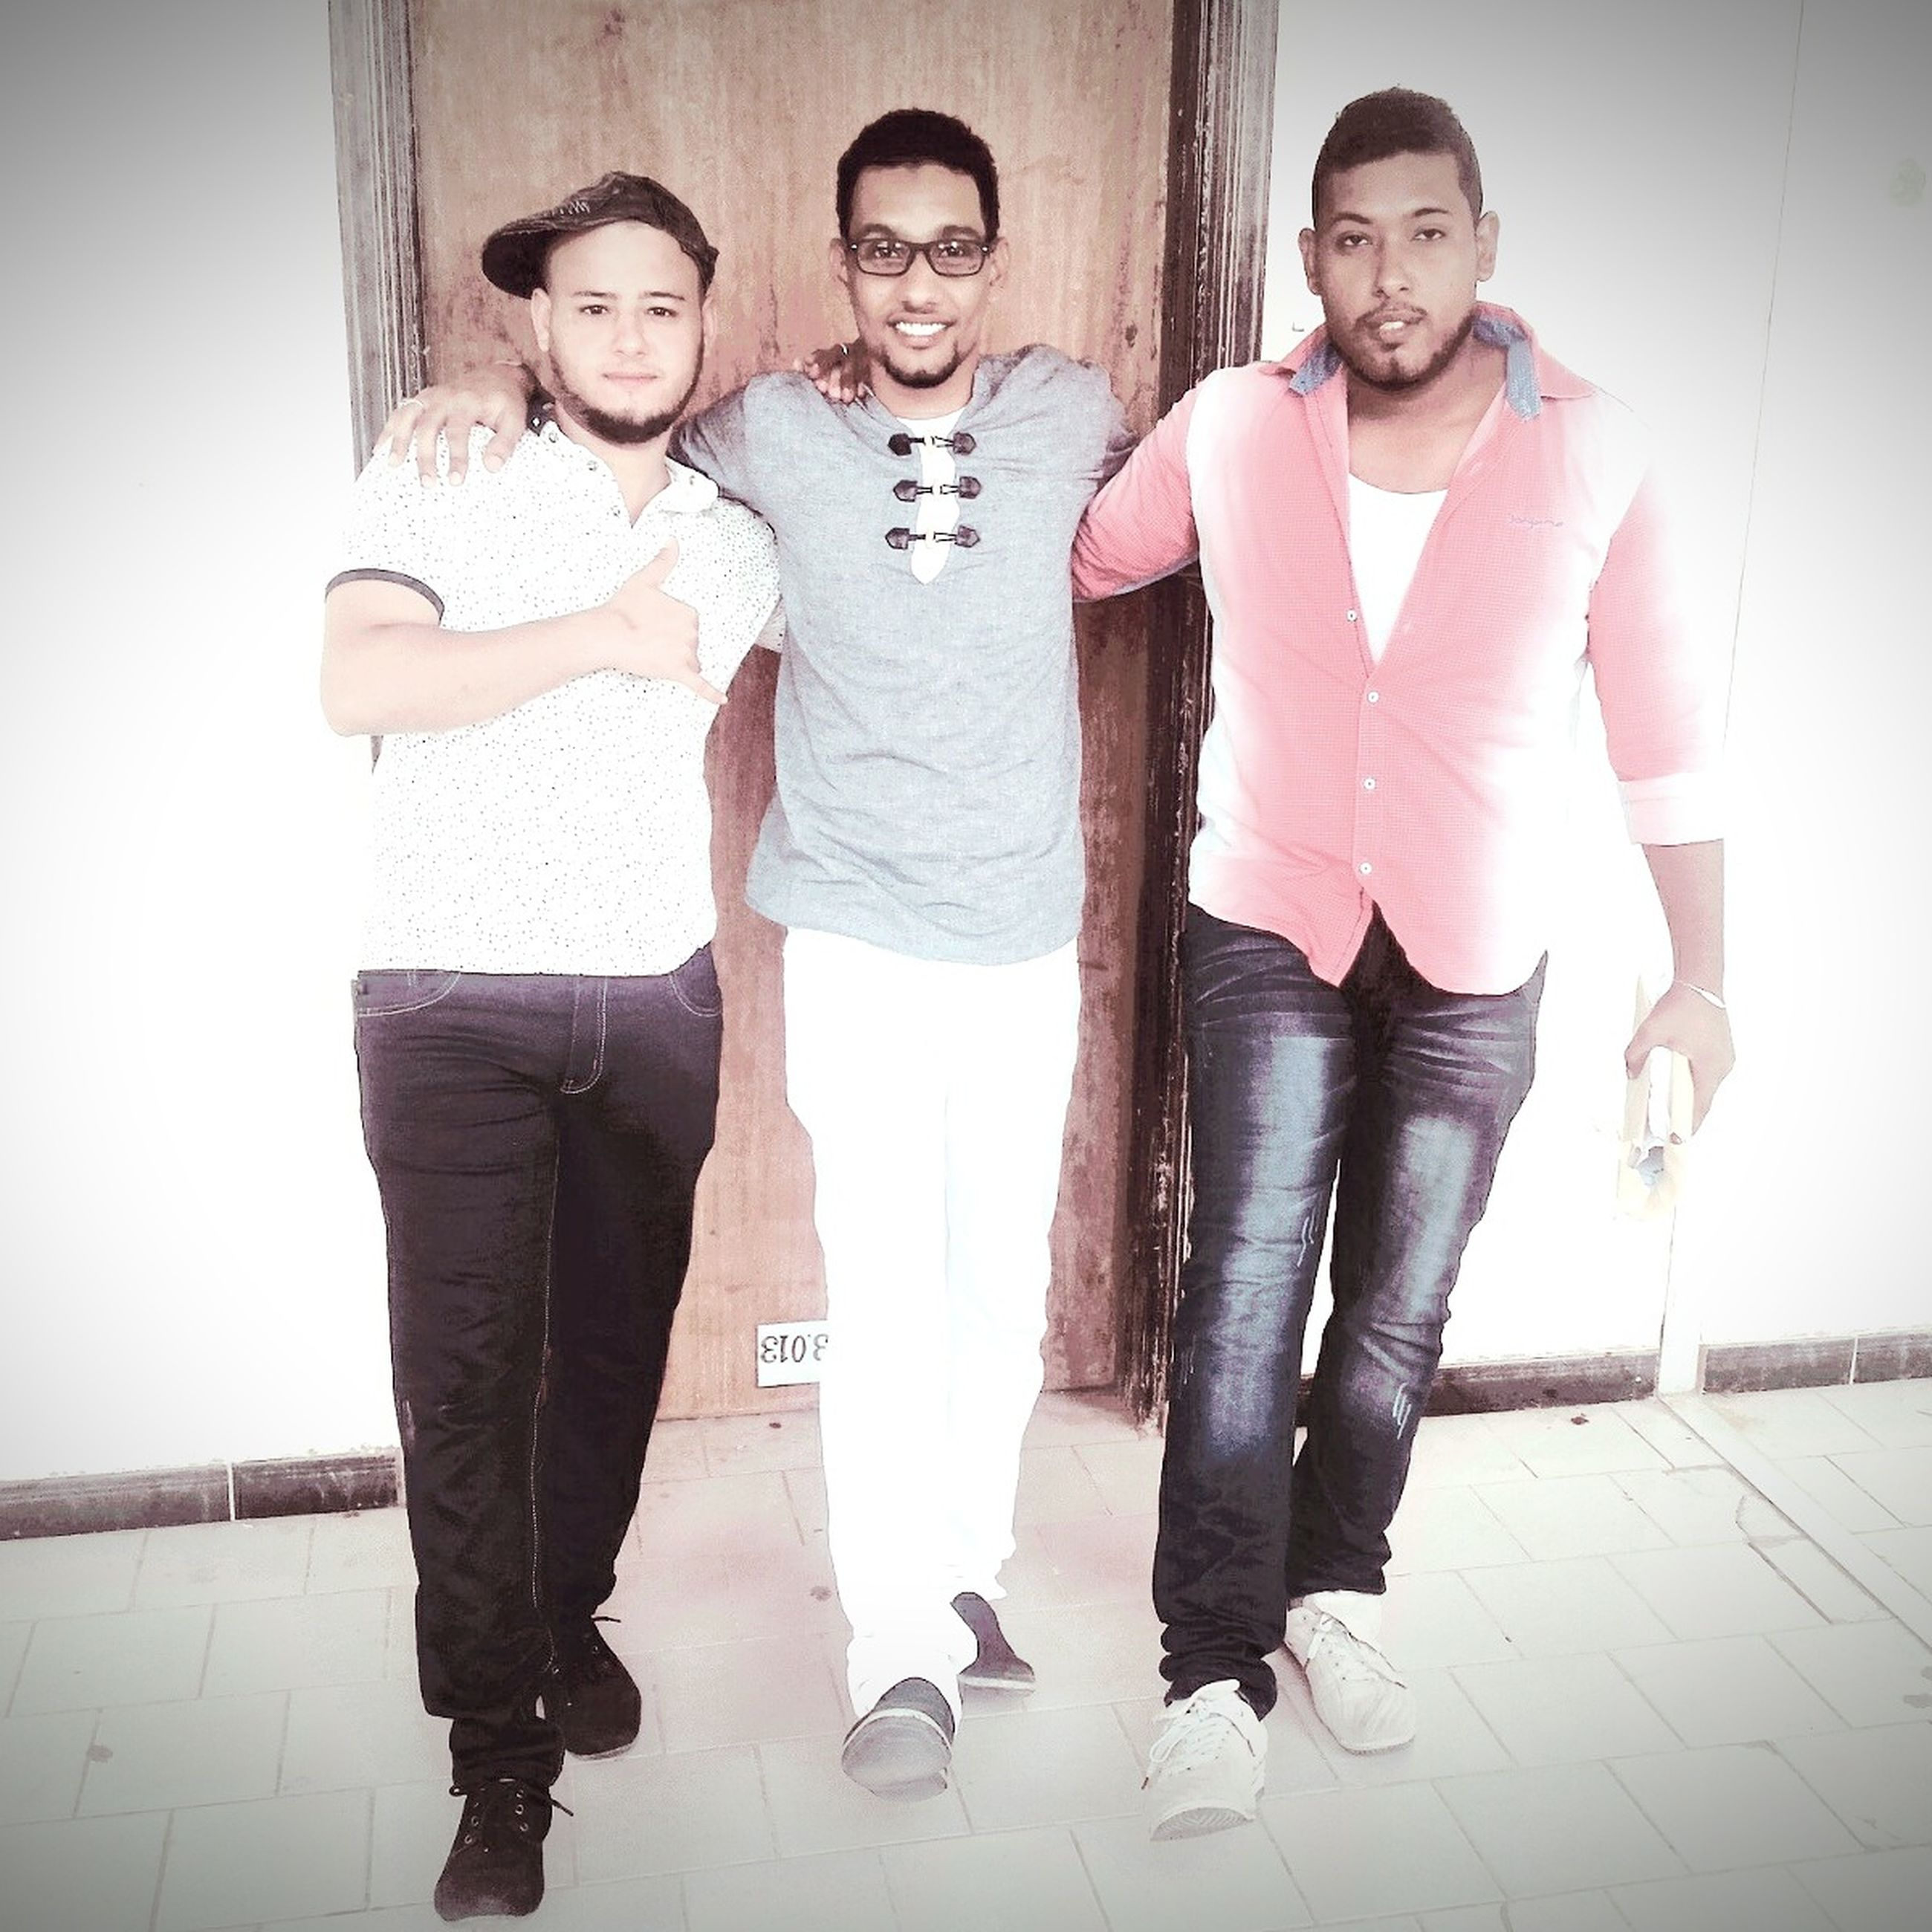 togetherness, bonding, front view, love, friendship, standing, leisure activity, portrait, full length, lifestyles, looking at camera, young adult, casual clothing, person, happiness, smiling, young men, shoe, well-dressed, fashionable, friend